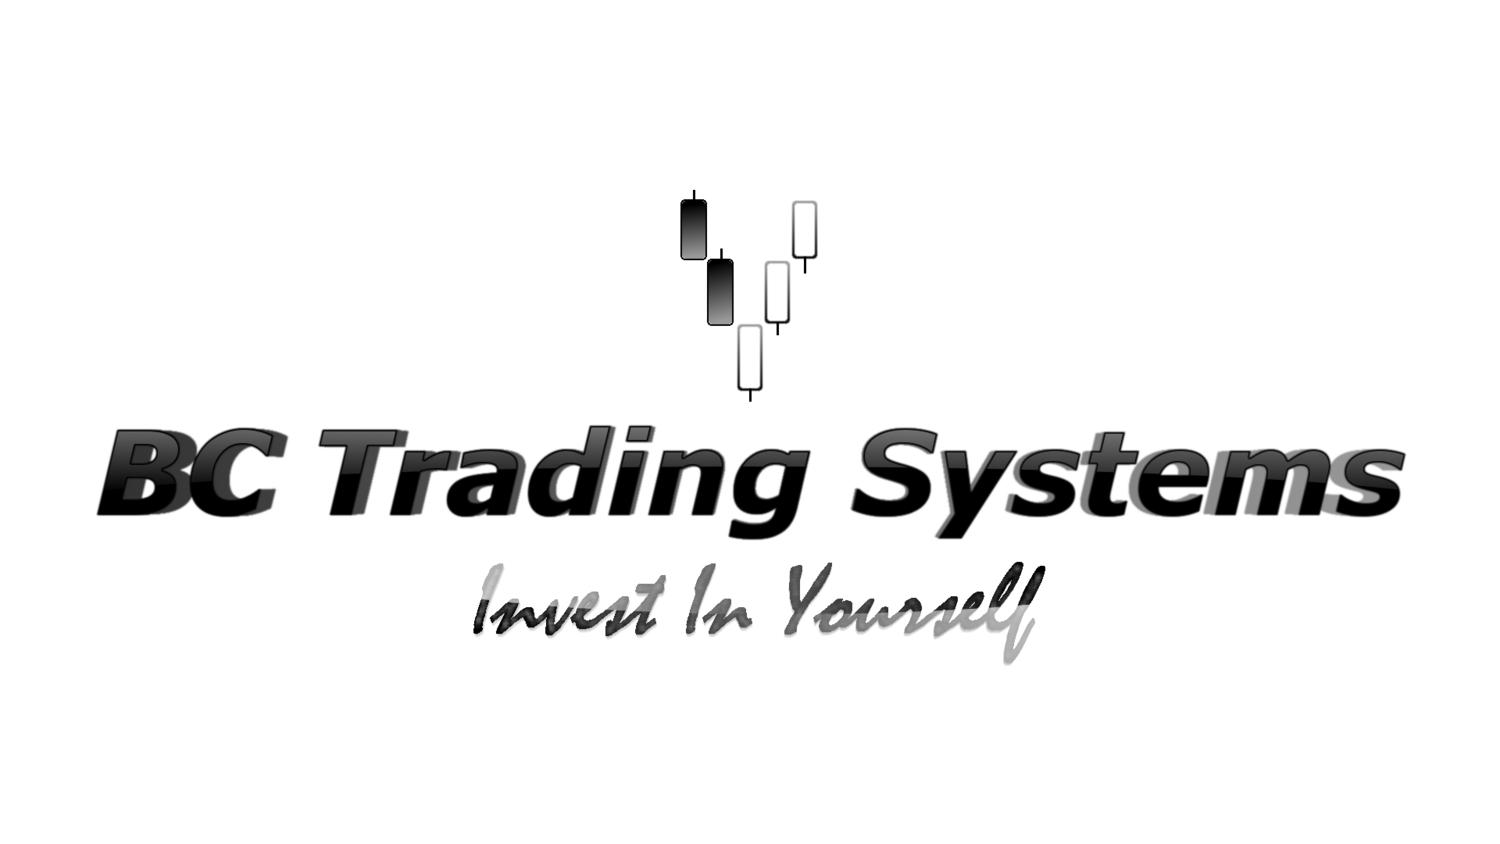 BC Trading Systems